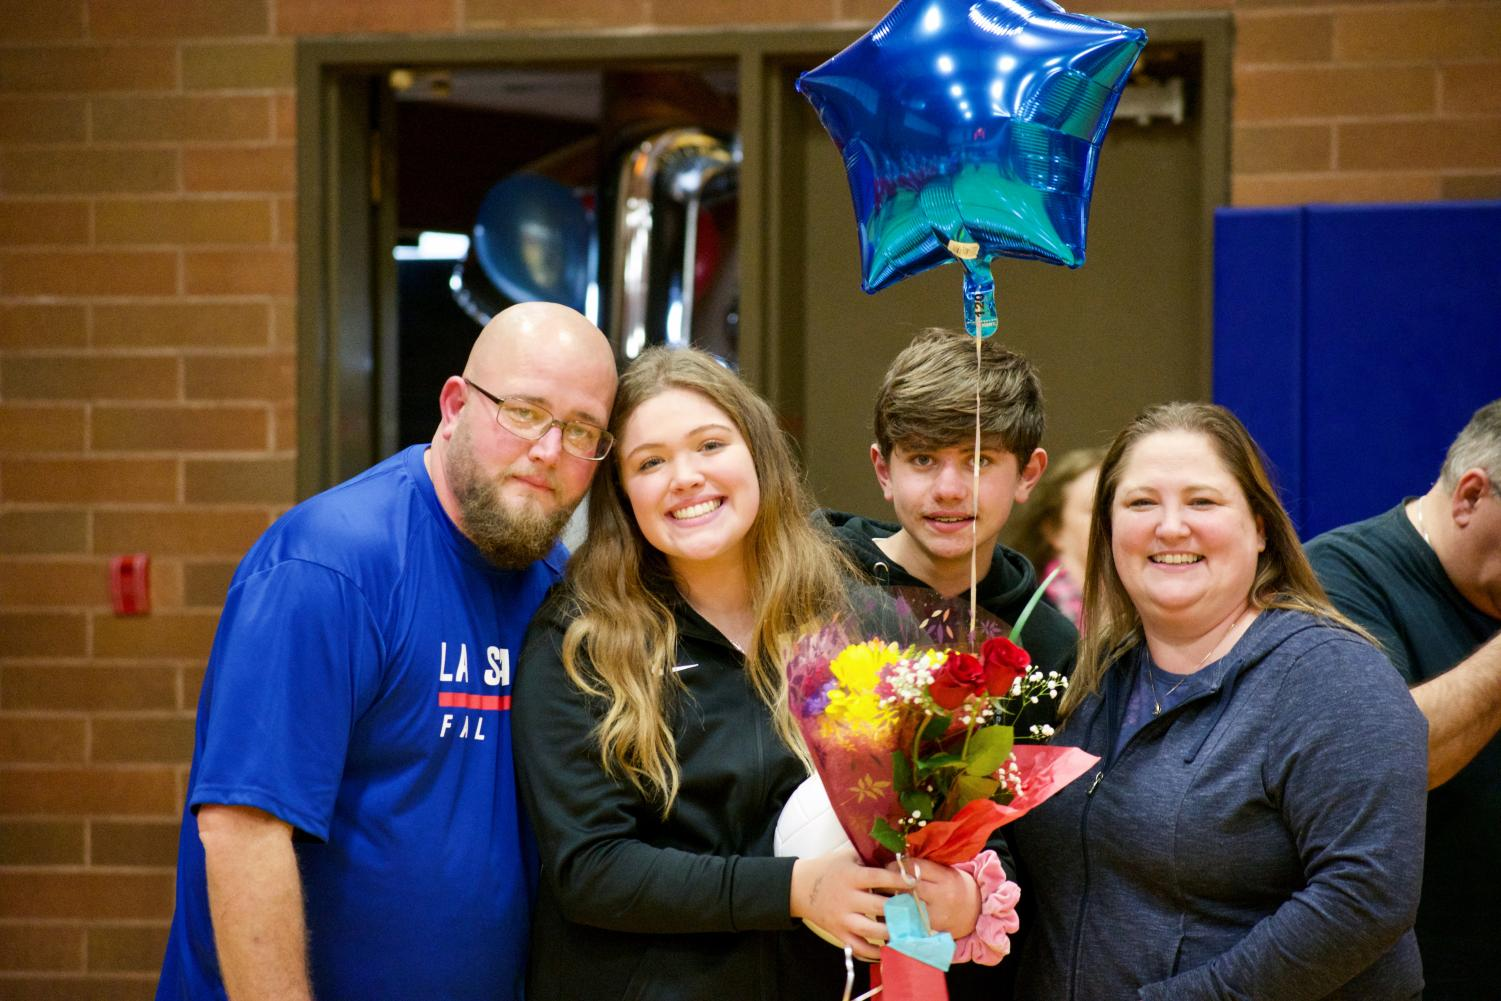 Lauren+Patrick+is+recognized+at+senior+night+and+accompanied+by+her+family.